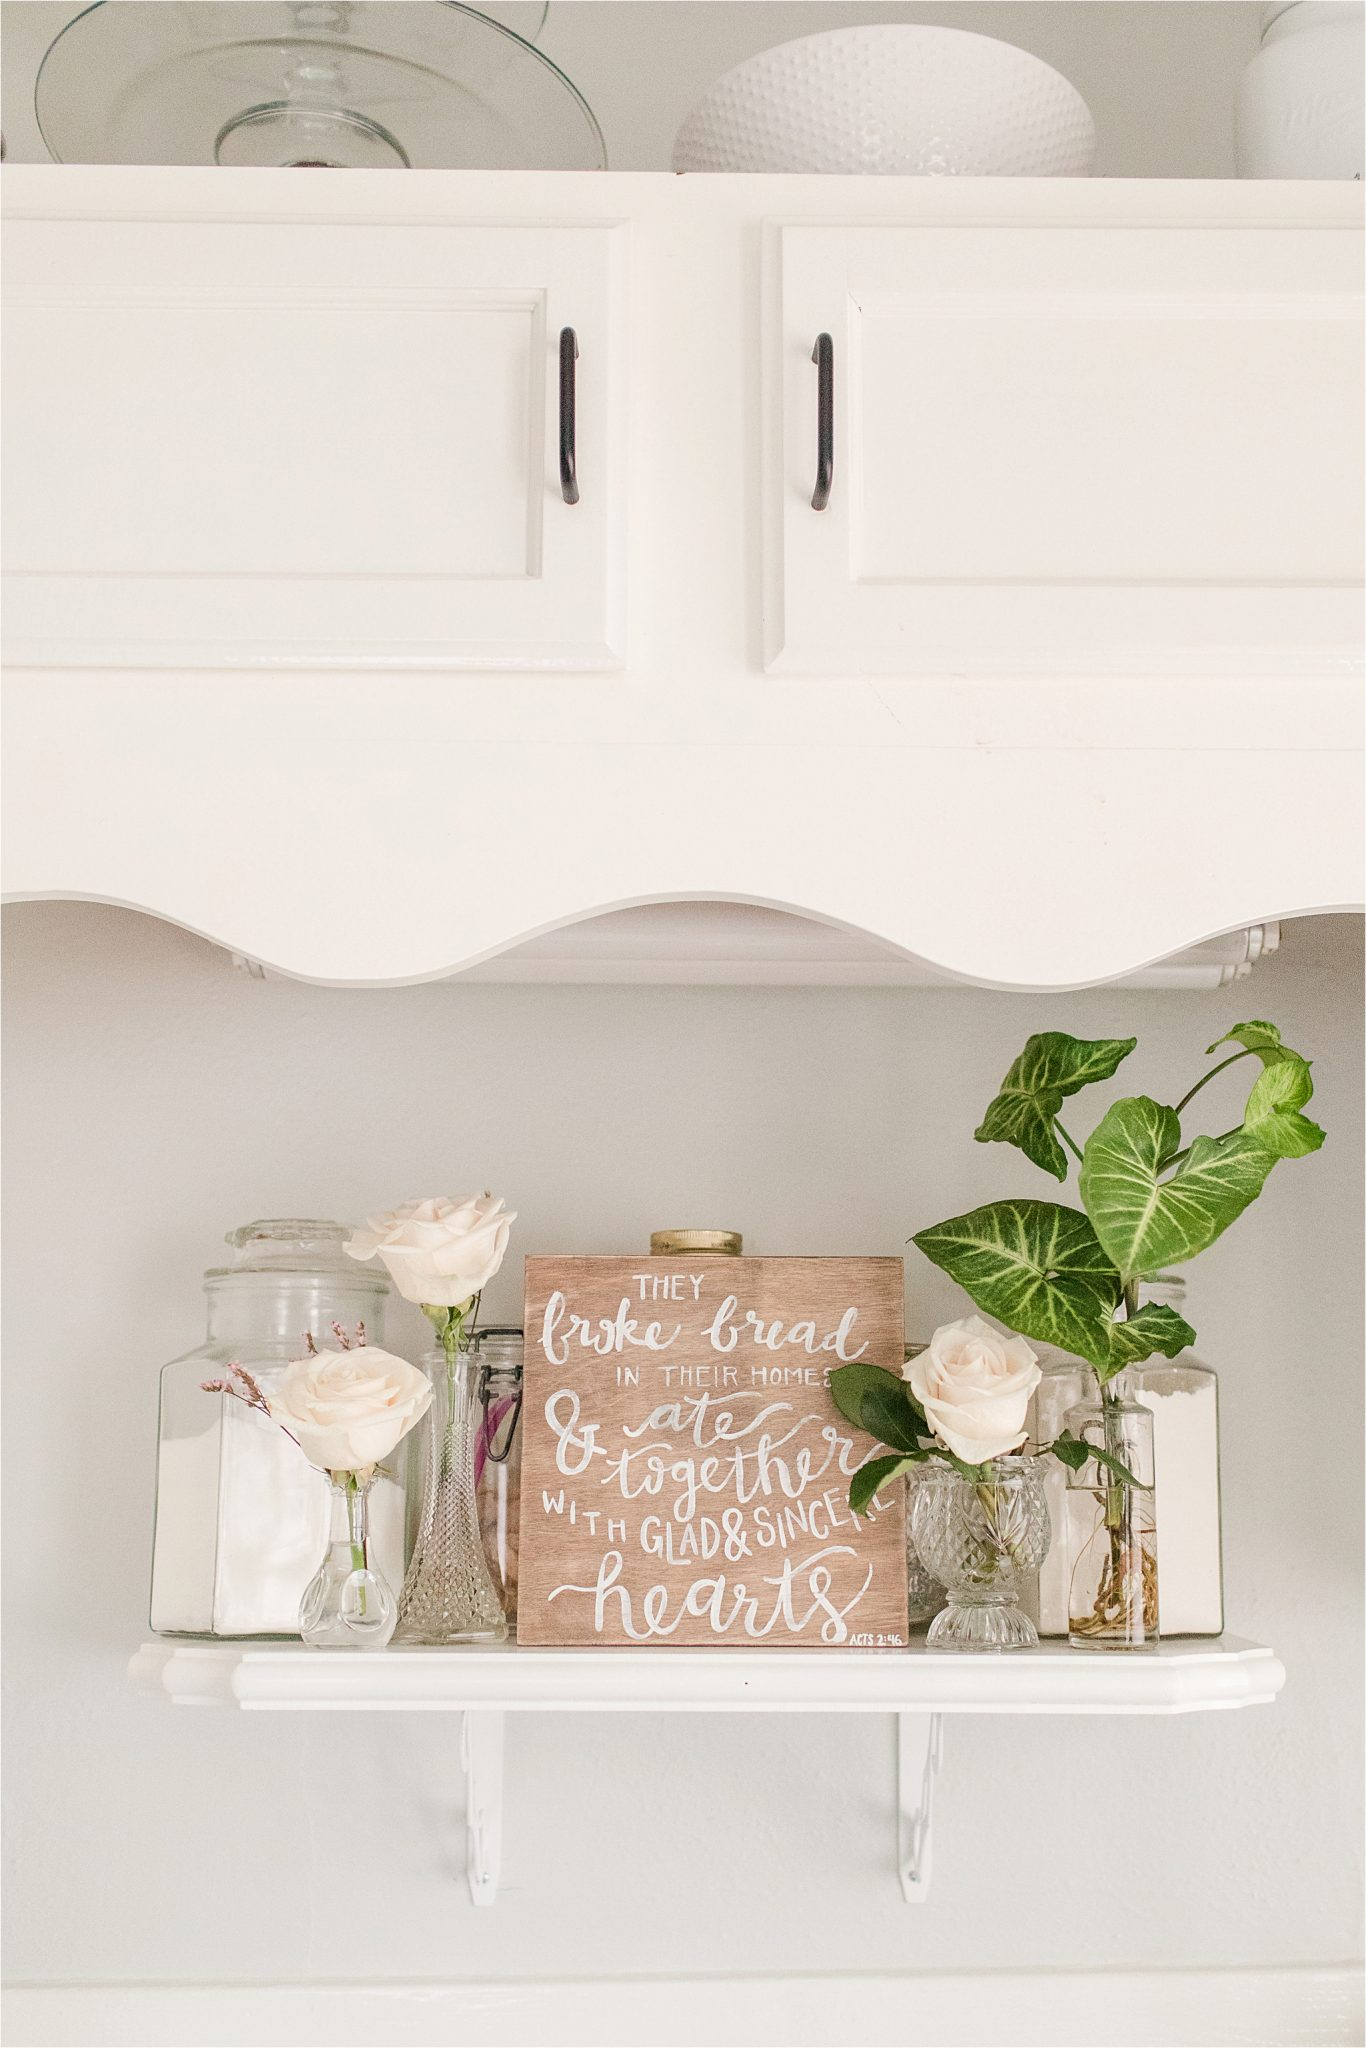 house to home-details-decorating-ideas-simple-flowers-fresh-family-signs-decor-white